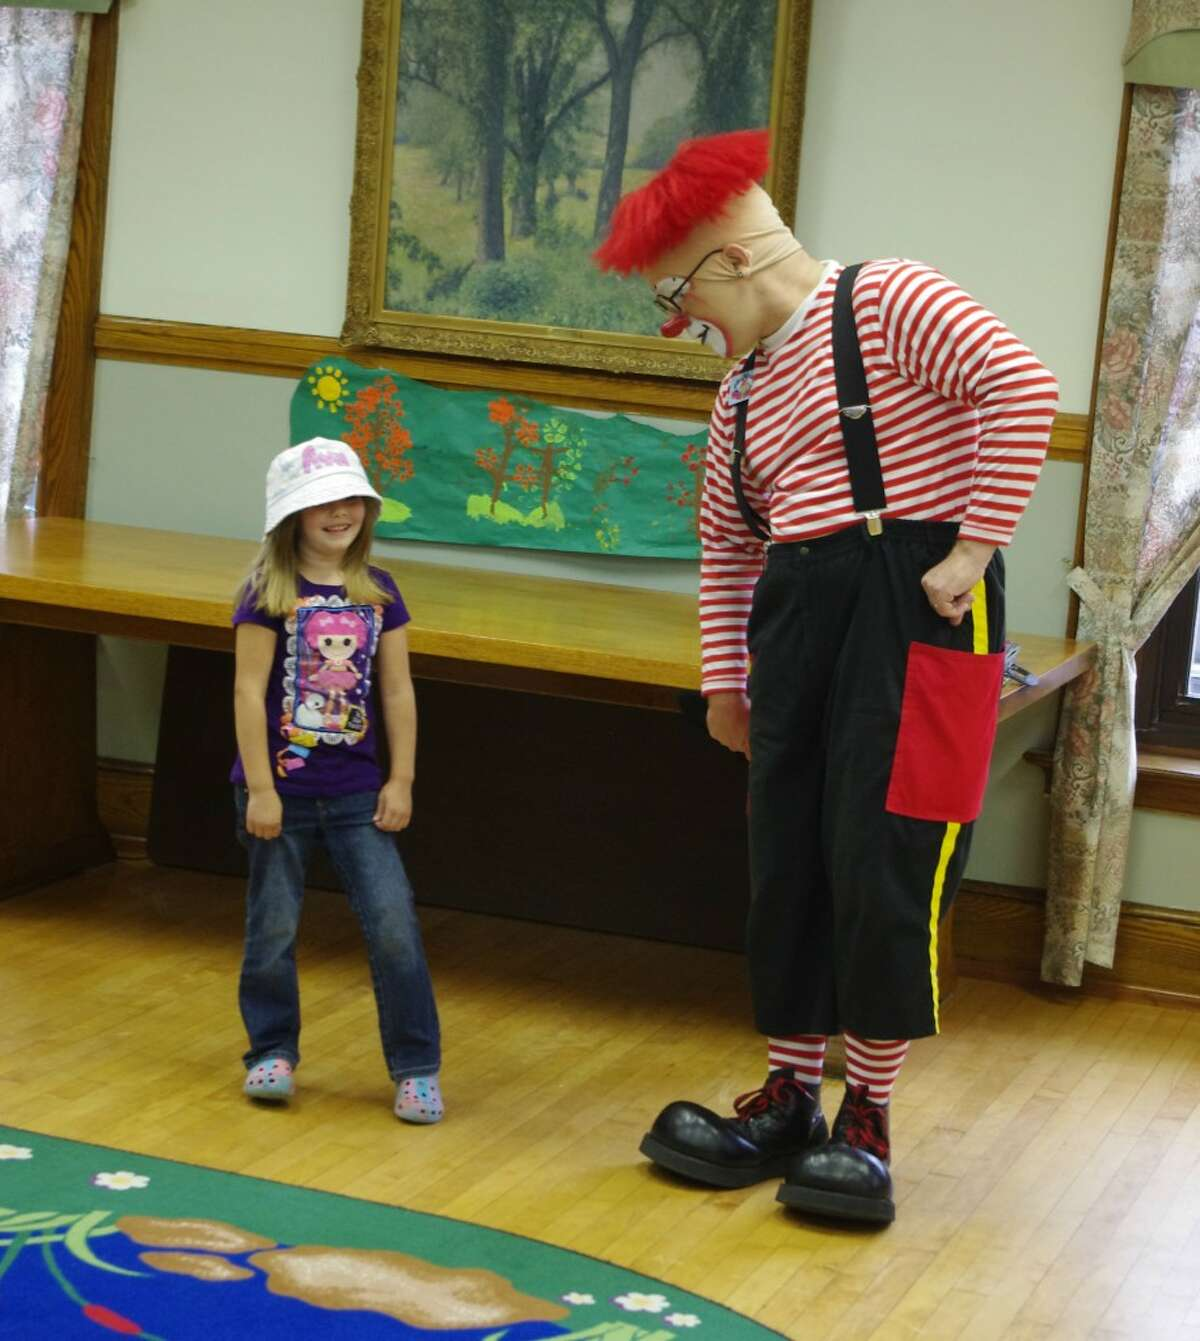 Ava Heuer came to the front to assist clown J.P. Ballyhoo at the Manistee Library on Tuesday. Ballyhoo was in town to promote the Kelly Miller Circus, which will be in Manistee at the industrial park on Washington Avenue for two performances on Aug. 21. (Dave Yarnell/Staff Writer)